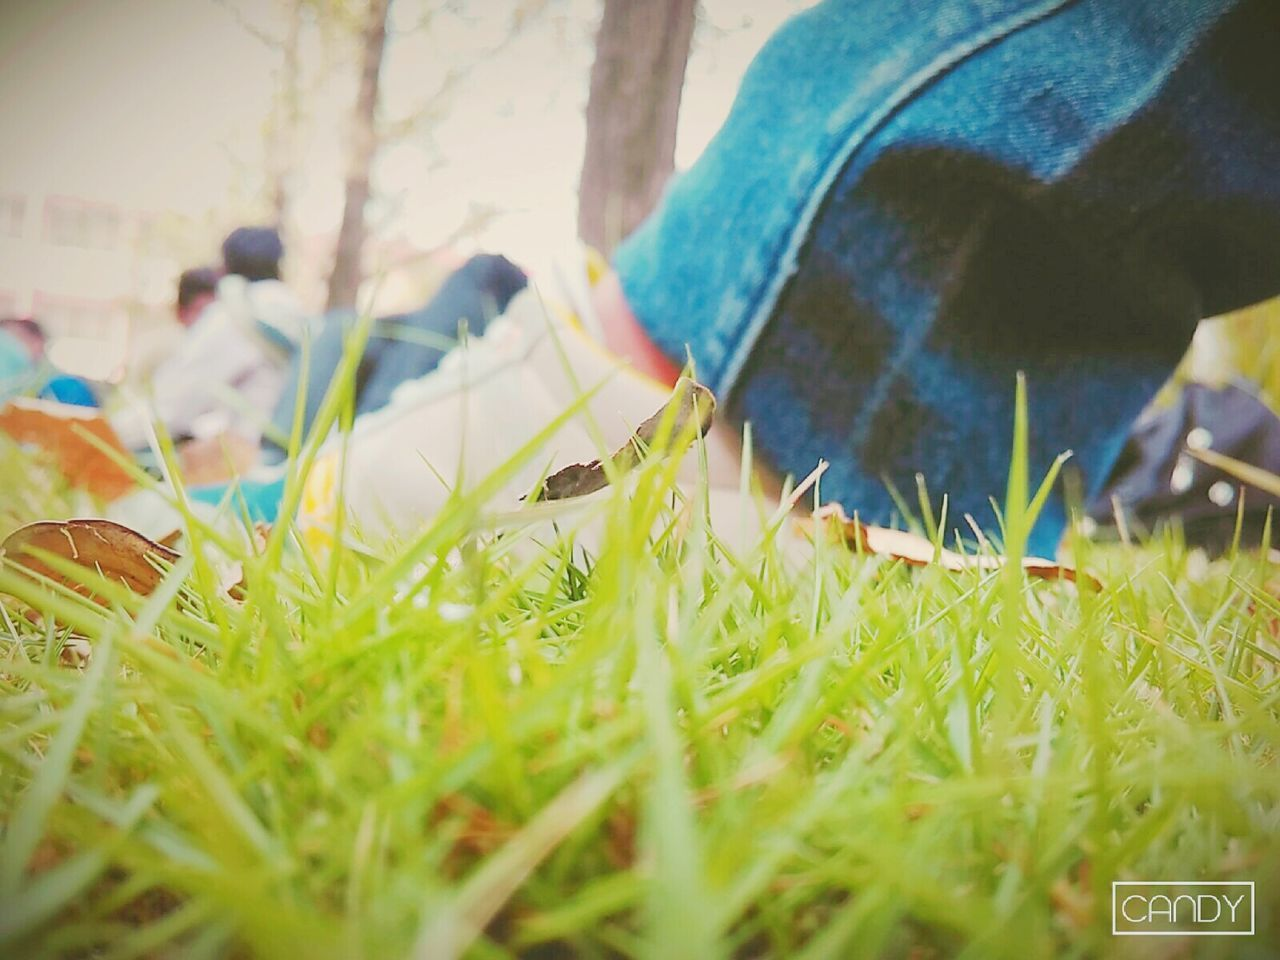 grass, field, selective focus, real people, nature, growth, day, outdoors, beauty in nature, close-up, one person, people